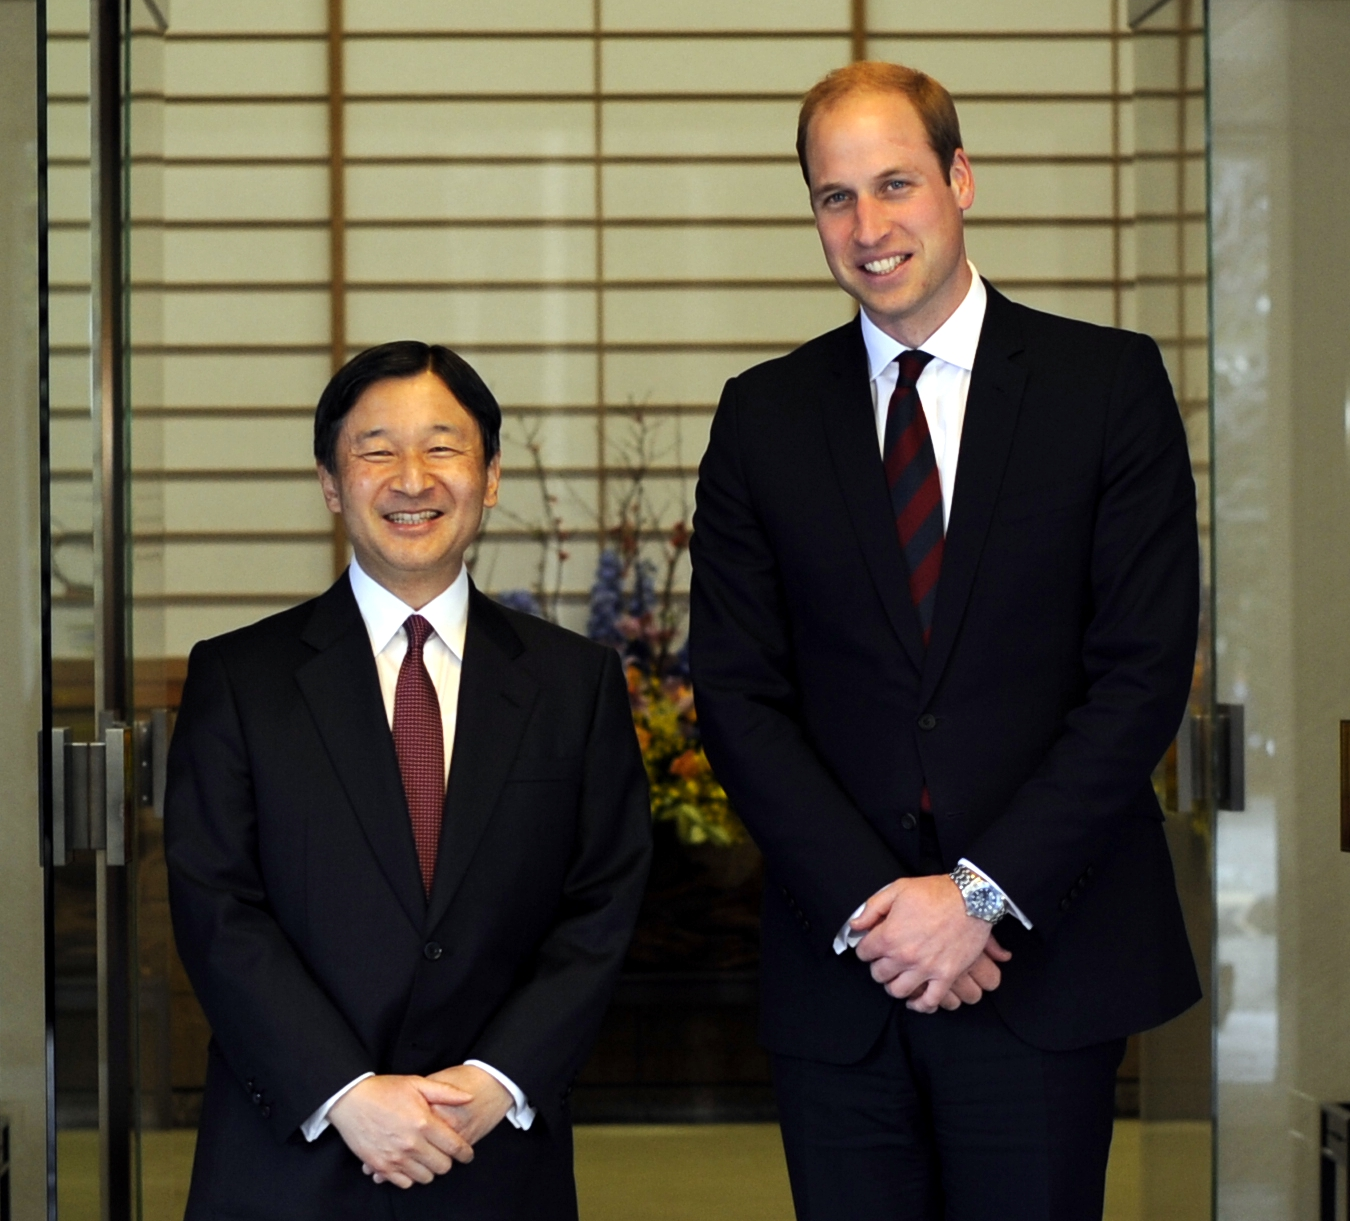 Crown Prince Naruhito and Prince William cropped 2 Crown Prince Naruhito and Prince William 20150227.jpg